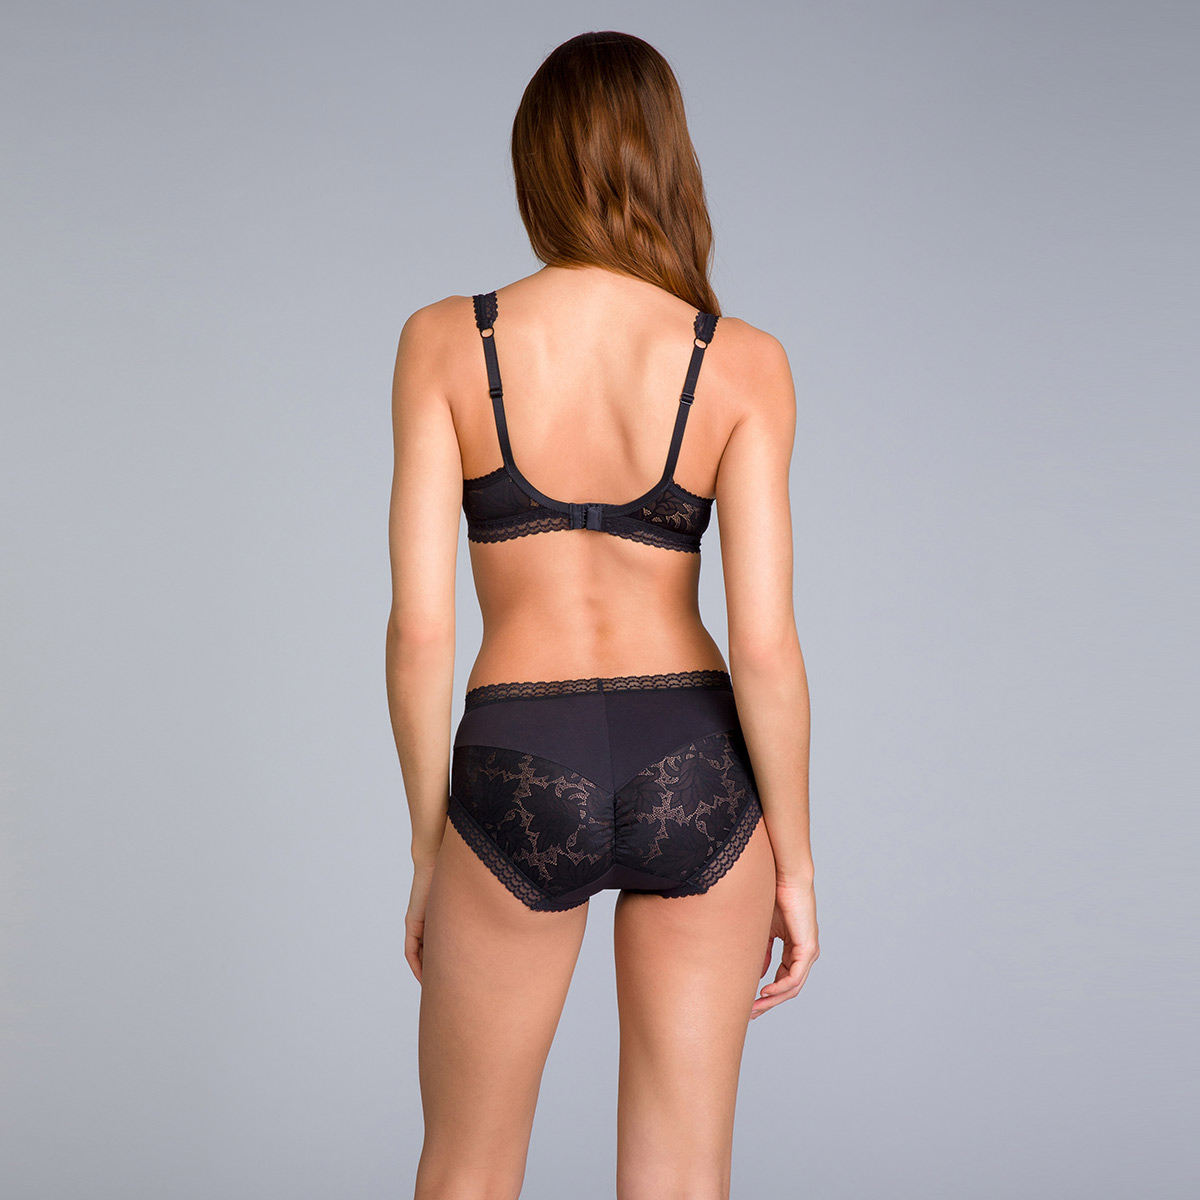 Midi Knickers in Black Lace - Invisible Elegance, , PLAYTEX